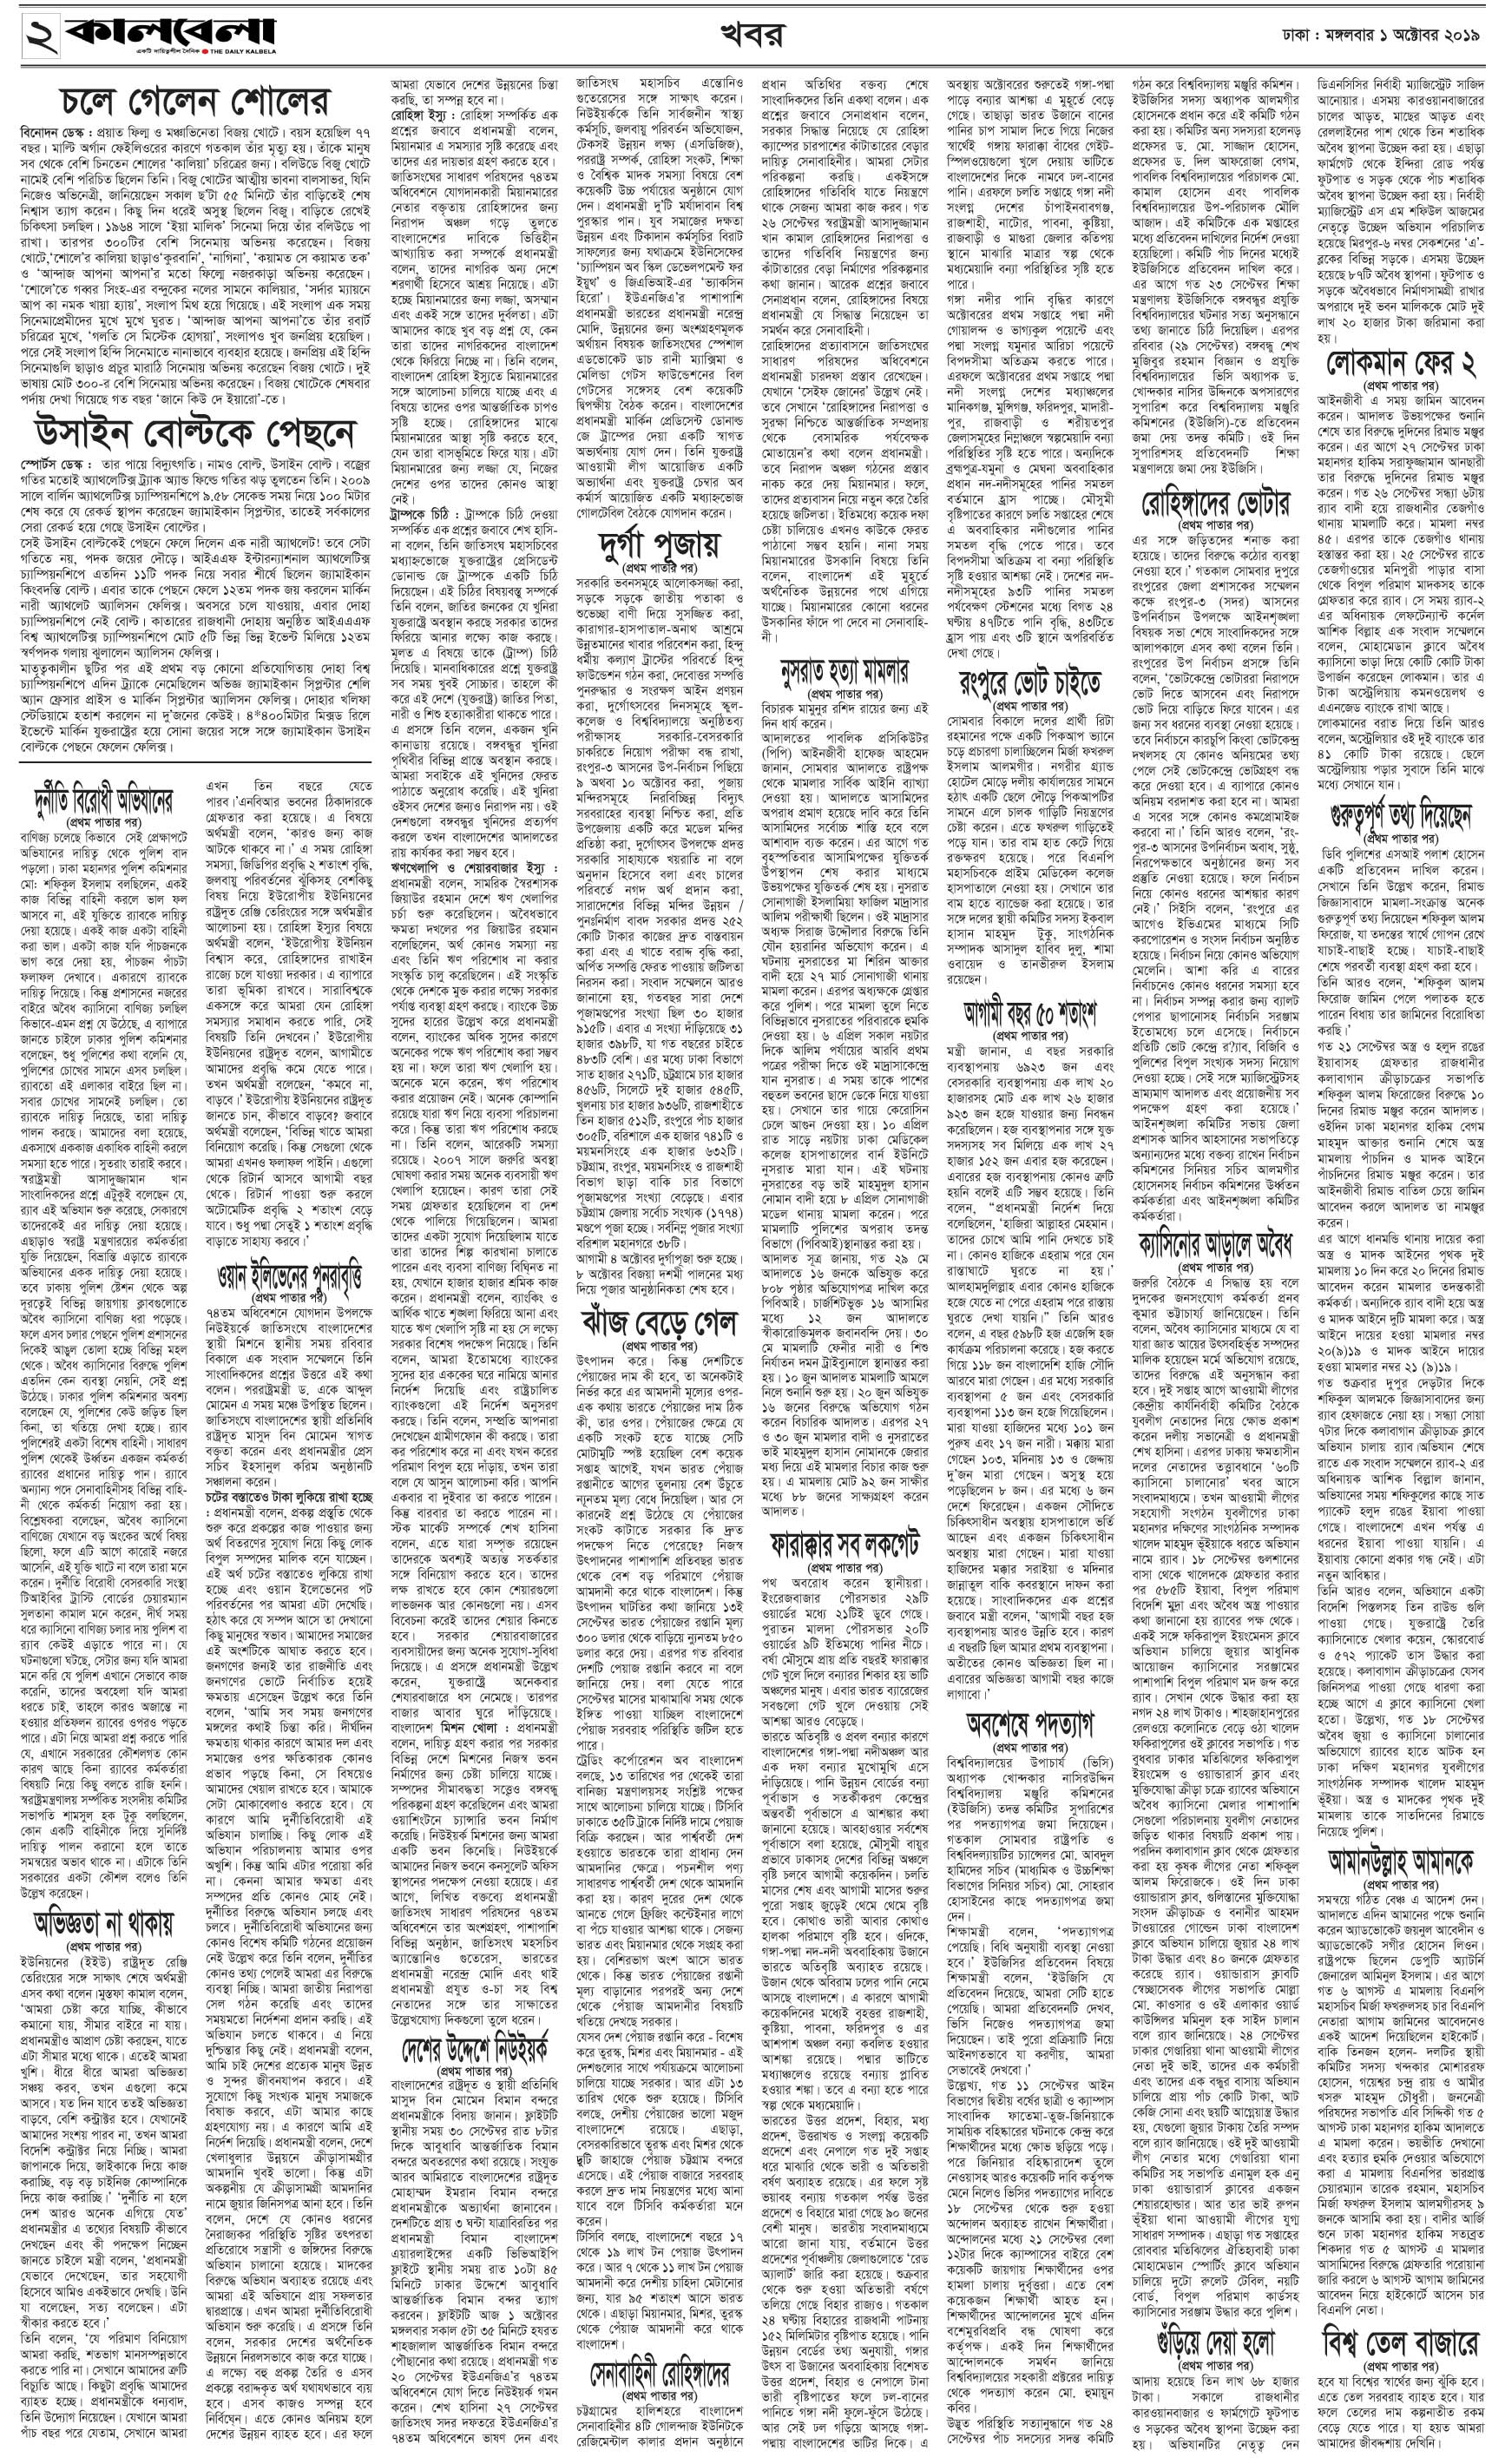 Page-2-(30-9-2019).qxd_Page